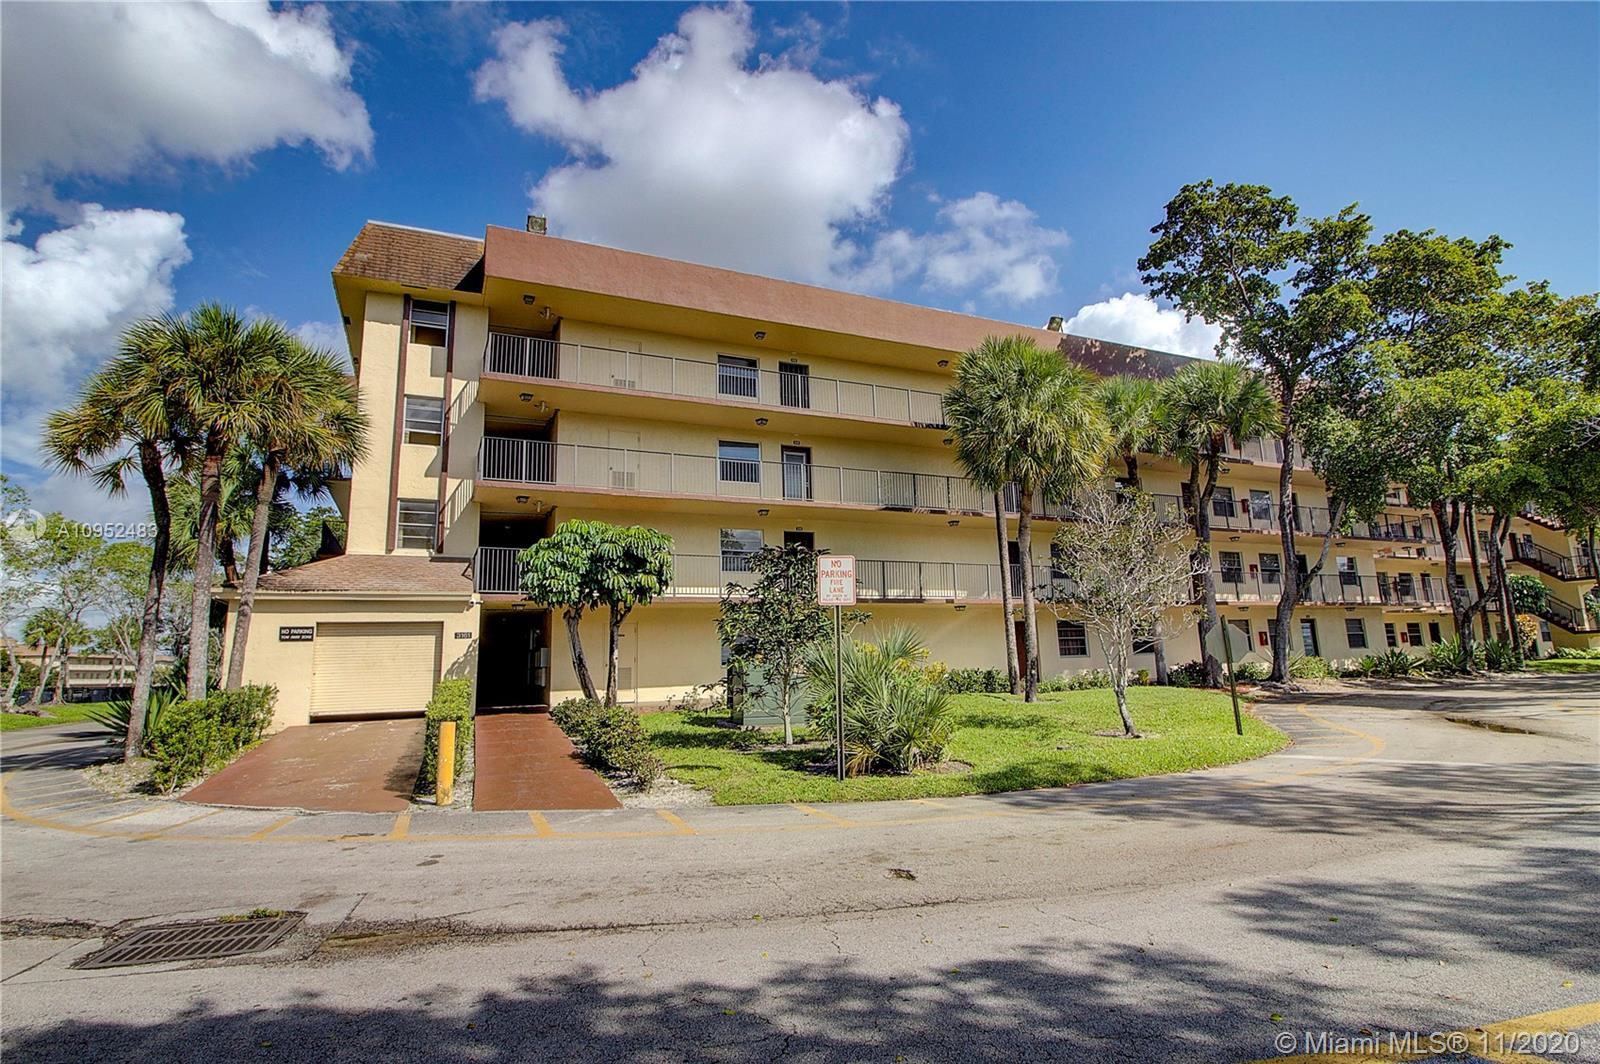 This 2 Bedroom 2 Bathroom Condo is conveniently located between I-95 and the Turnpike on Oakland Park Blvd. The Condo offers an open floorplan with split-bedrooms, eat-in-kitchen, and a screened-in-balcony overlooking a lake. An in-unit washer and dryer are also included. Cypress Chase North has a manned guard gate, 24-hour security patrol, and a host of additional amenities.